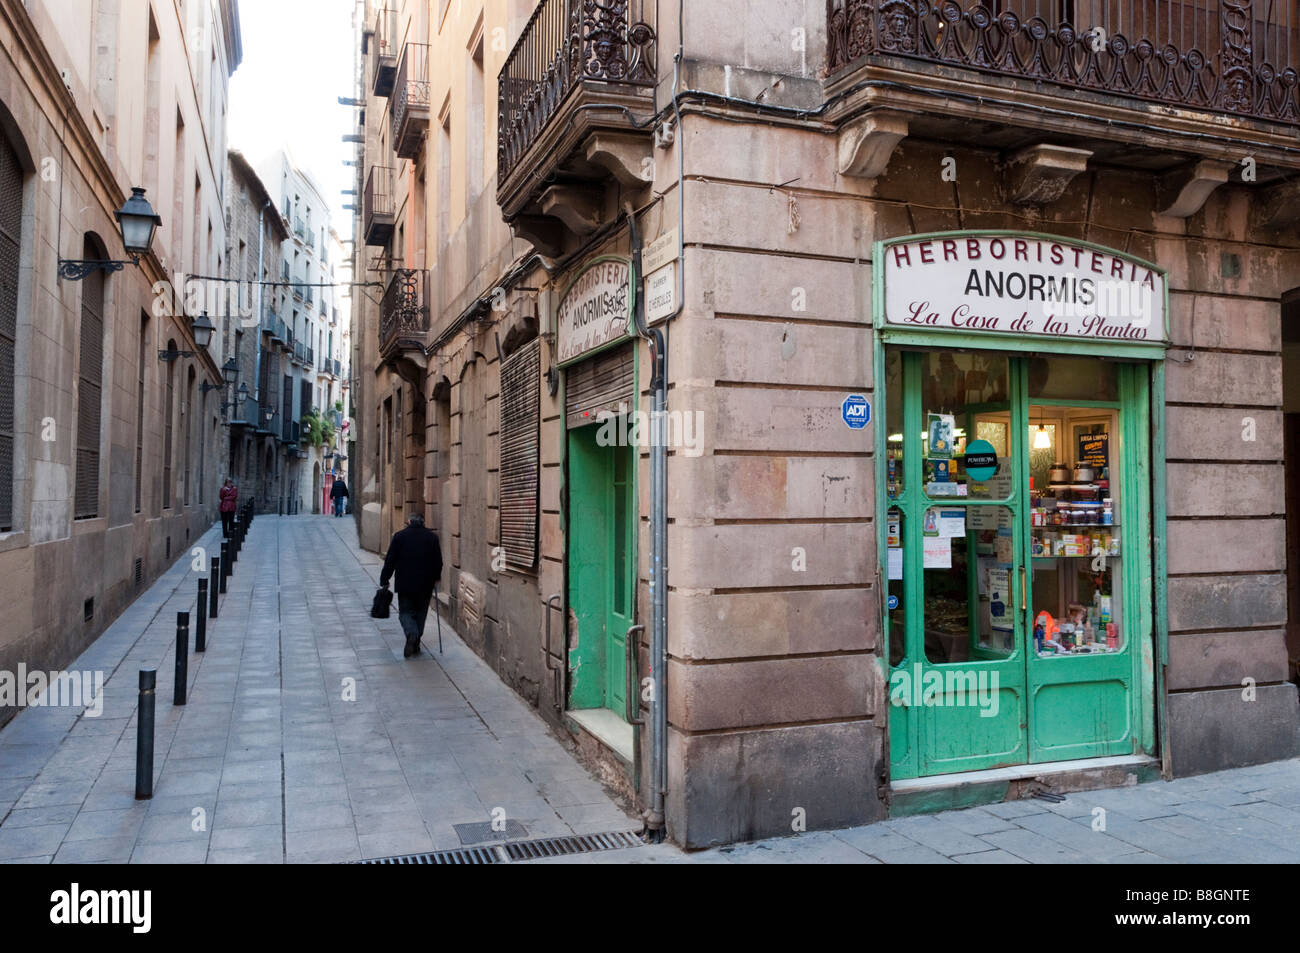 Narrow streets of the Barri Gotic Barcelona, Spain - Stock Image